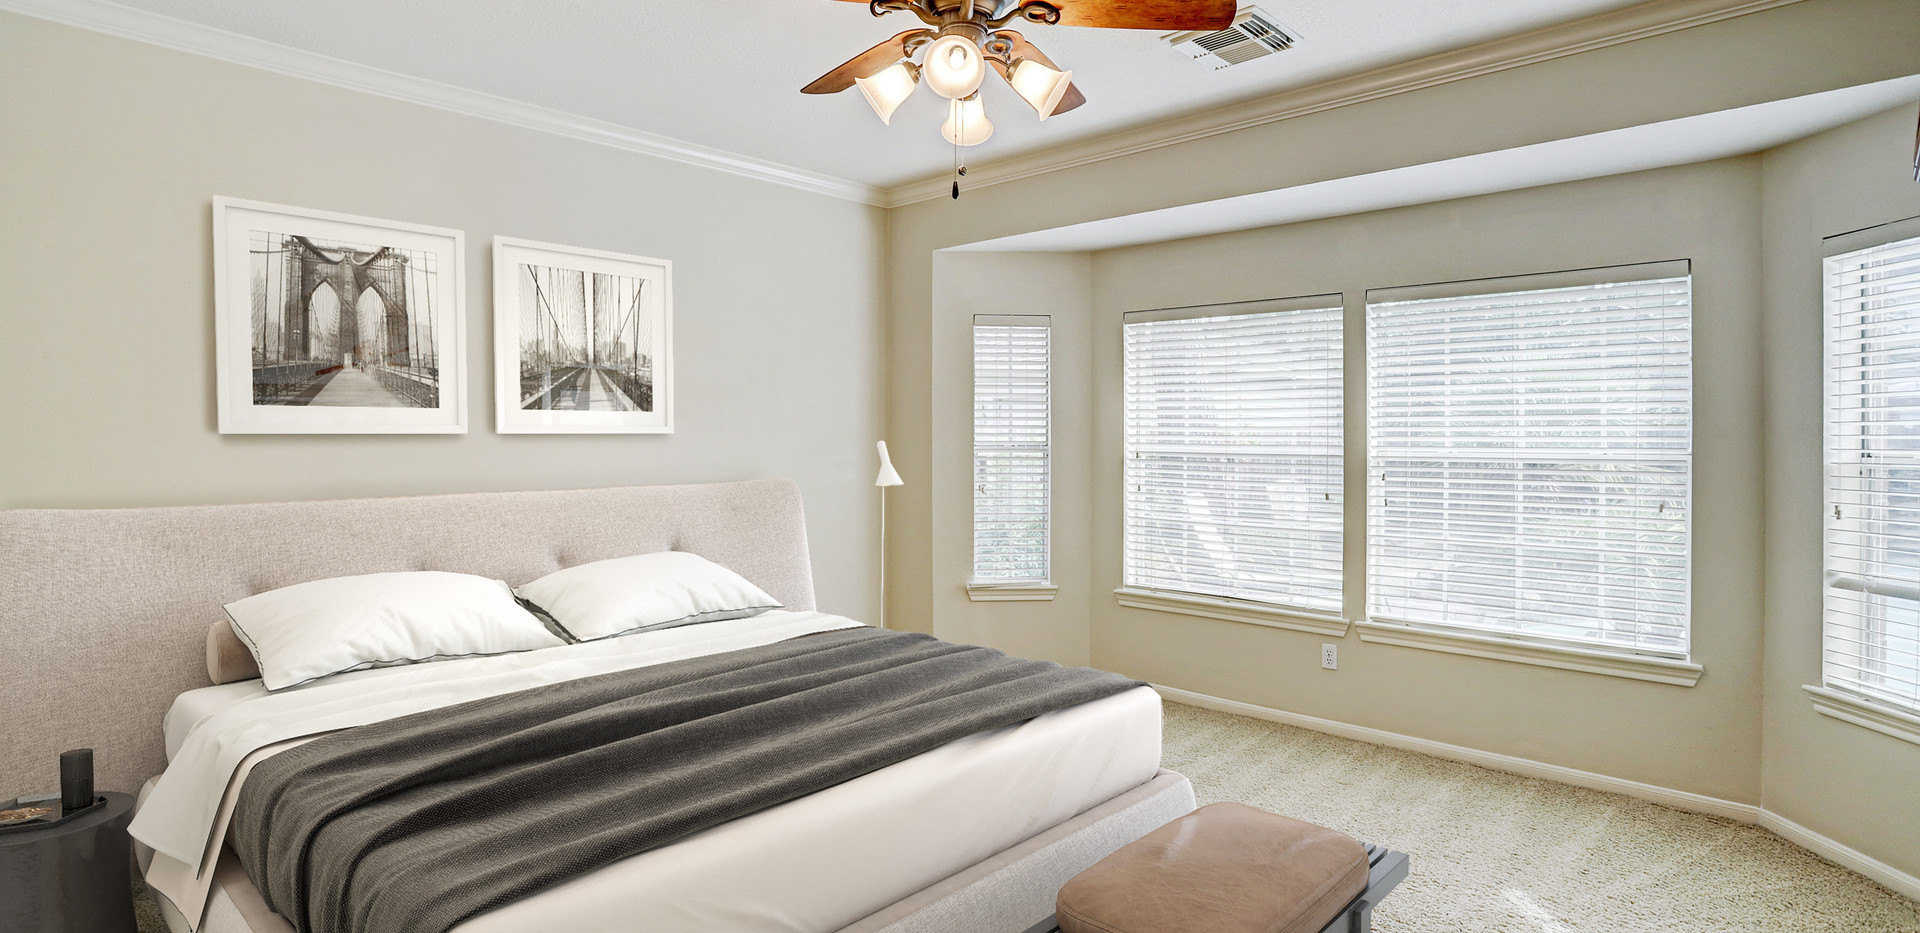 Virtually staged master bedroom.jpg